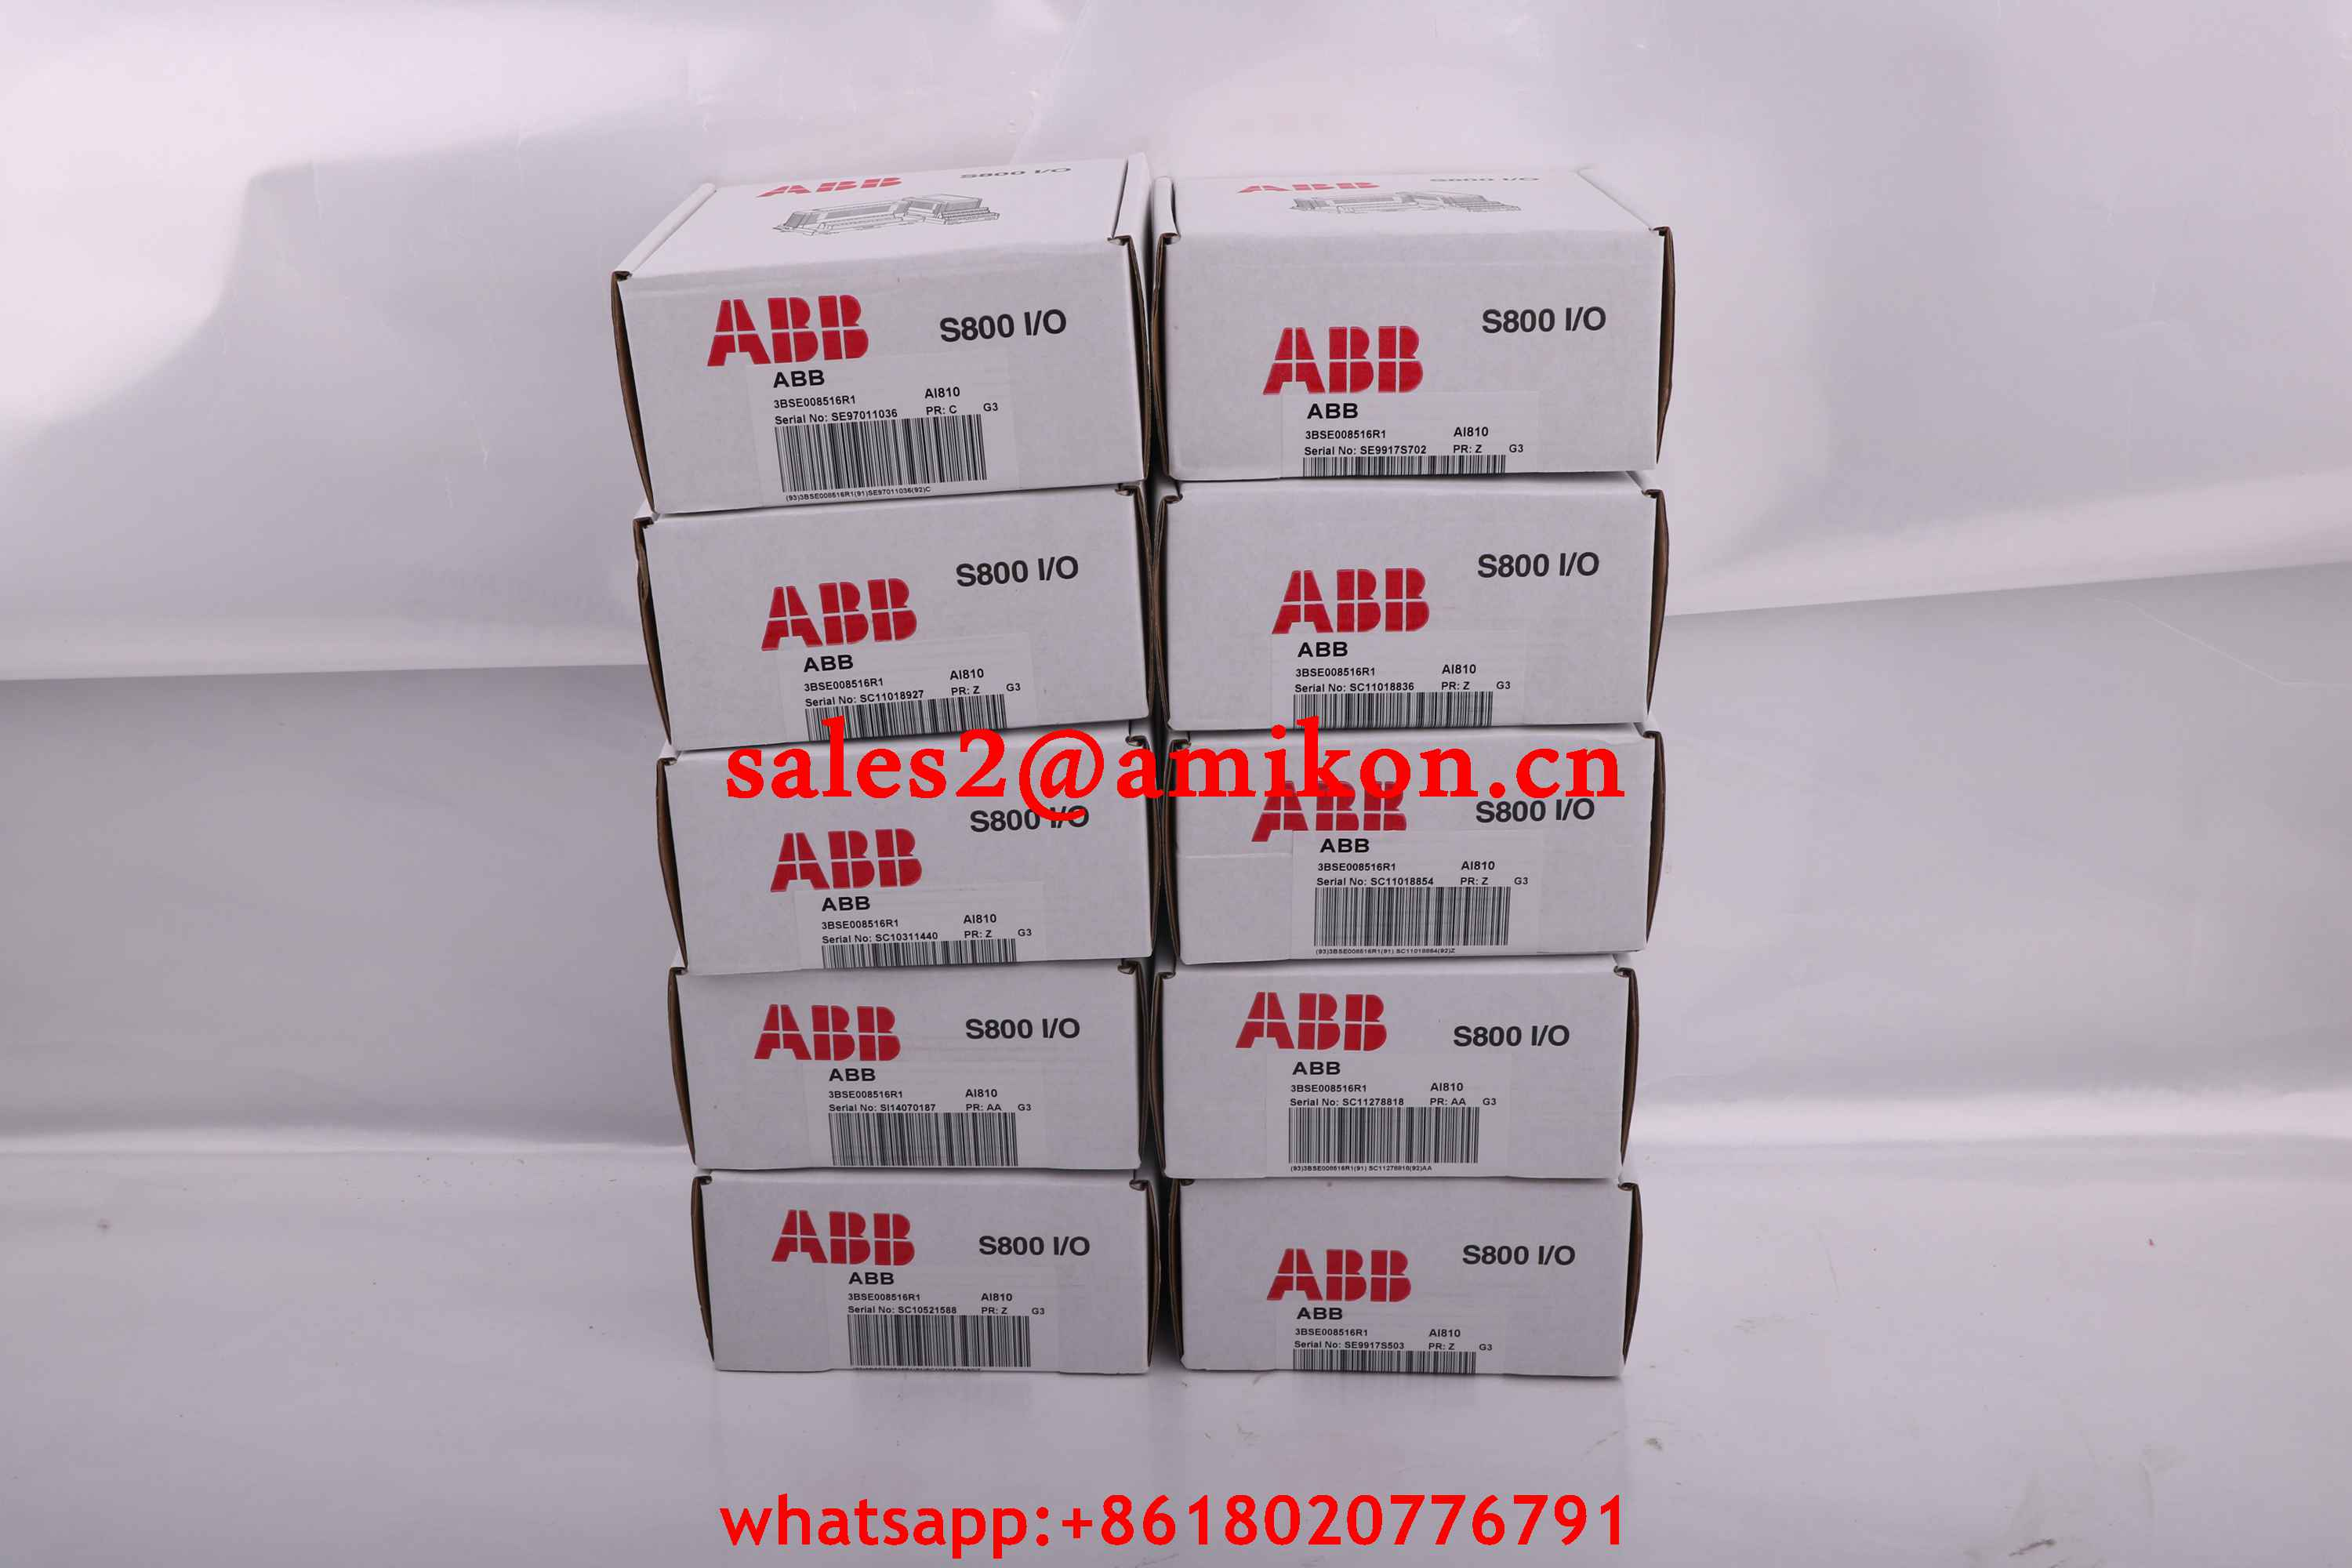 YB560103-BK DSQC 227 Winchester interface ABB | Robot spare parts | PLC DCS Parts T/T 100% New In stock